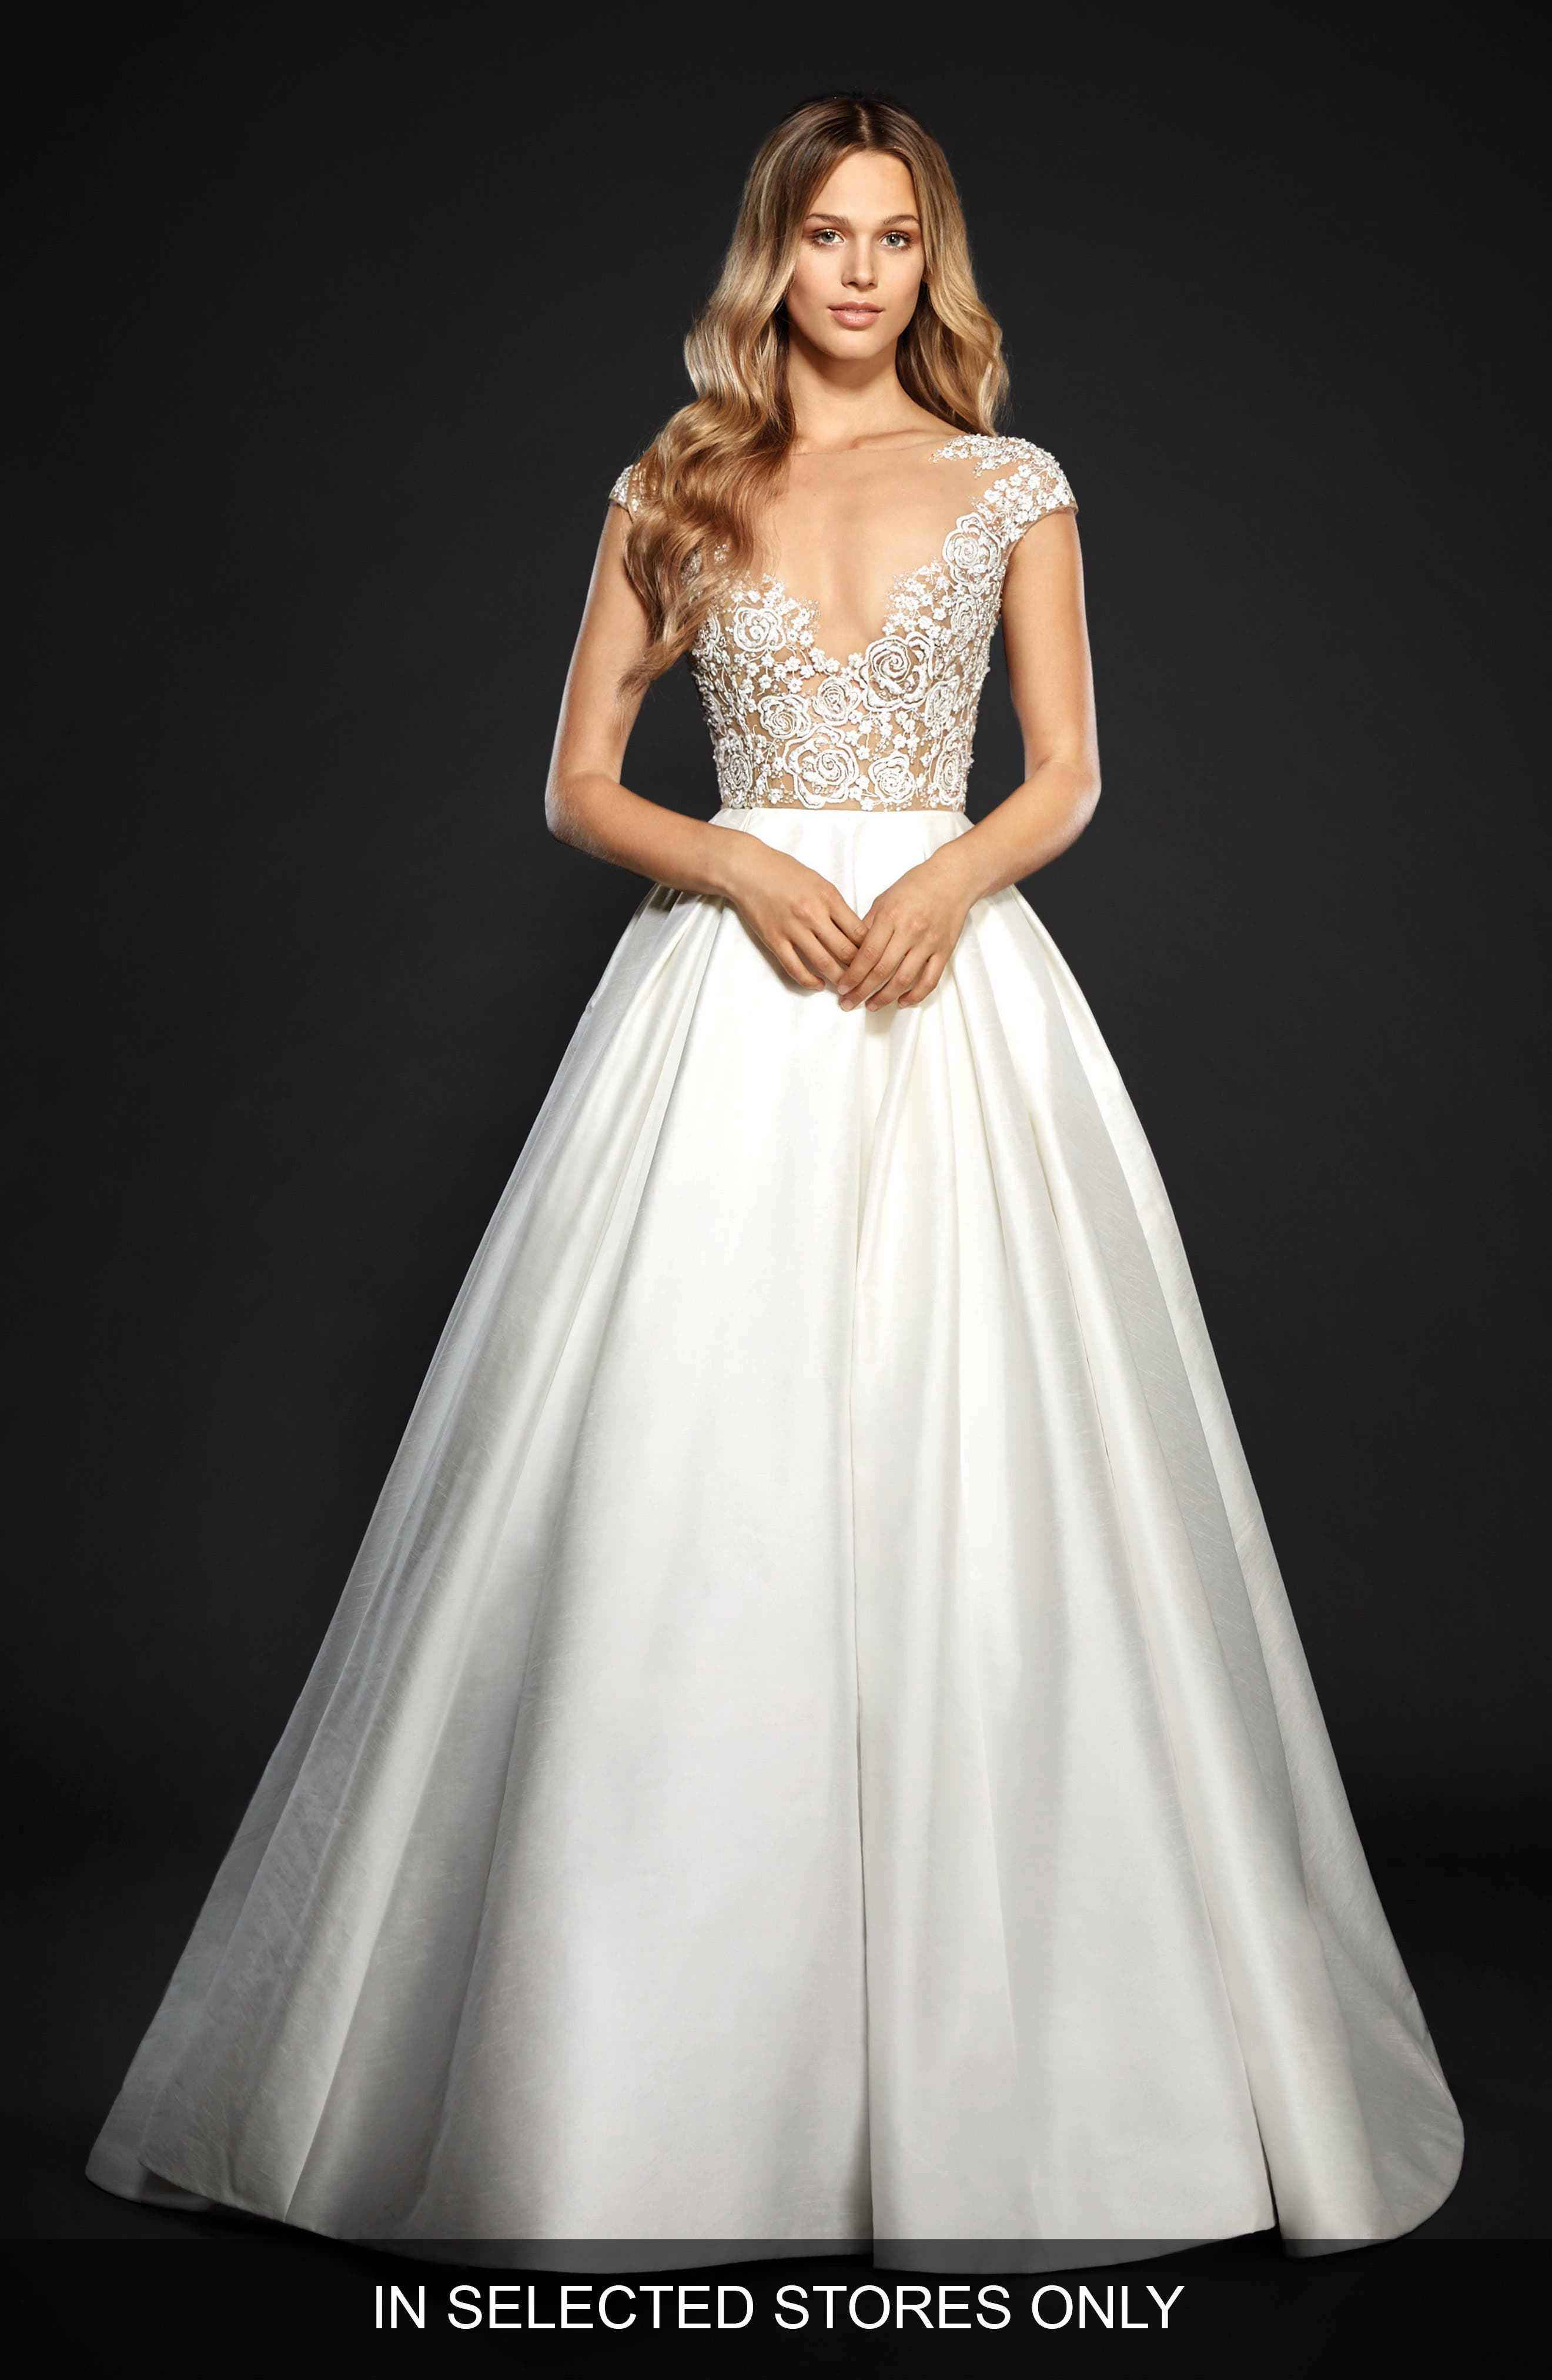 Chandler Floral Embroidered Illusion Ballgown,                             Main thumbnail 1, color,                             IVORY